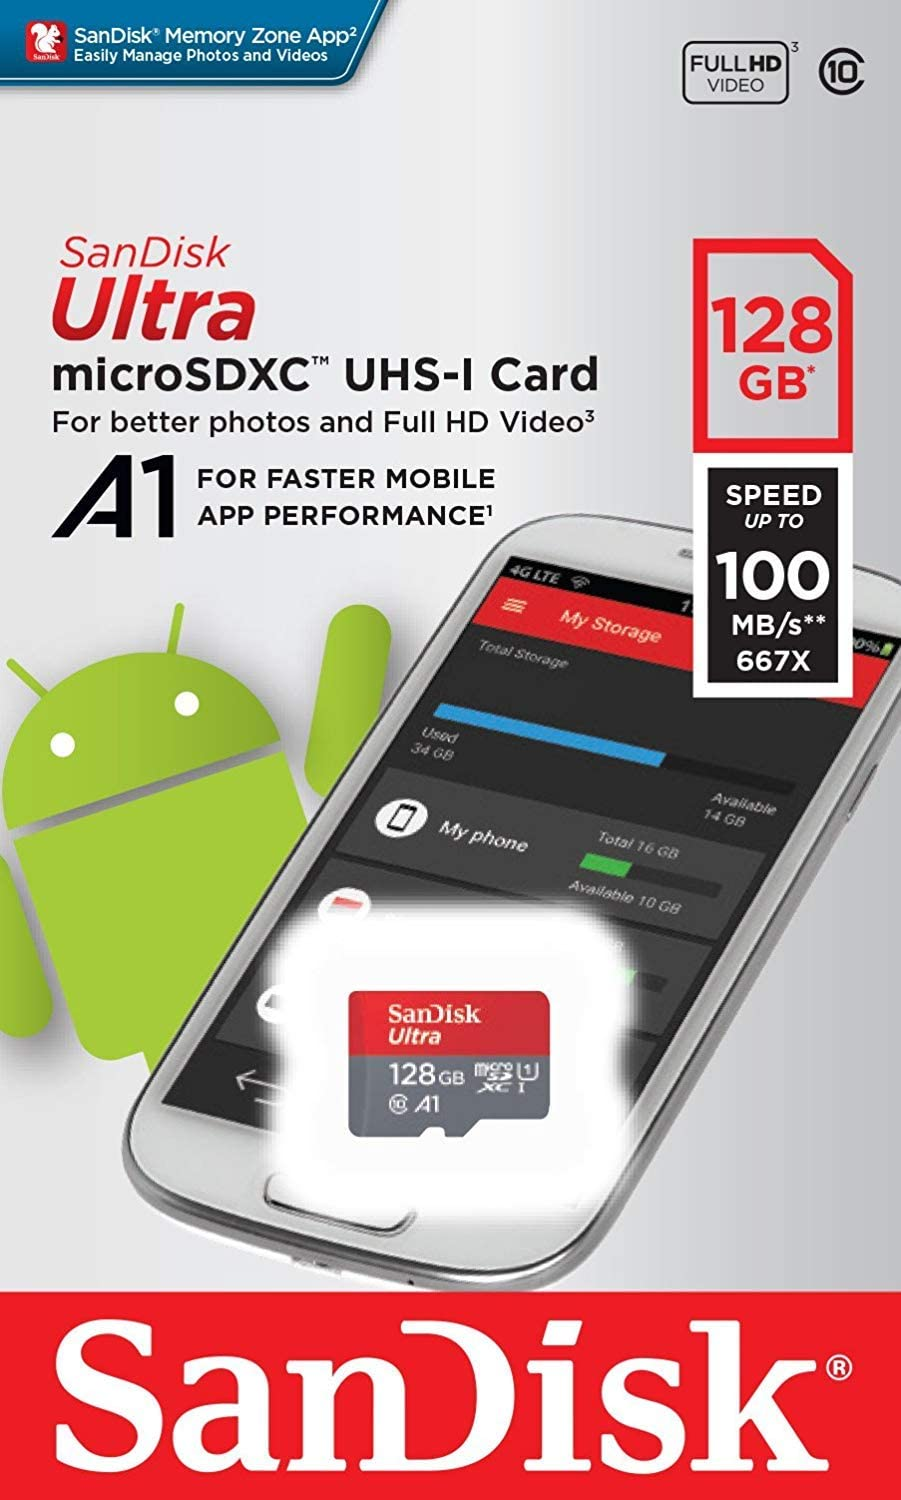 SanDisk Ultra 128GB MicroSDXC Verified for LG LM-G710EM by SanFlash 100MBs A1 U1 C10 Works with SanDisk